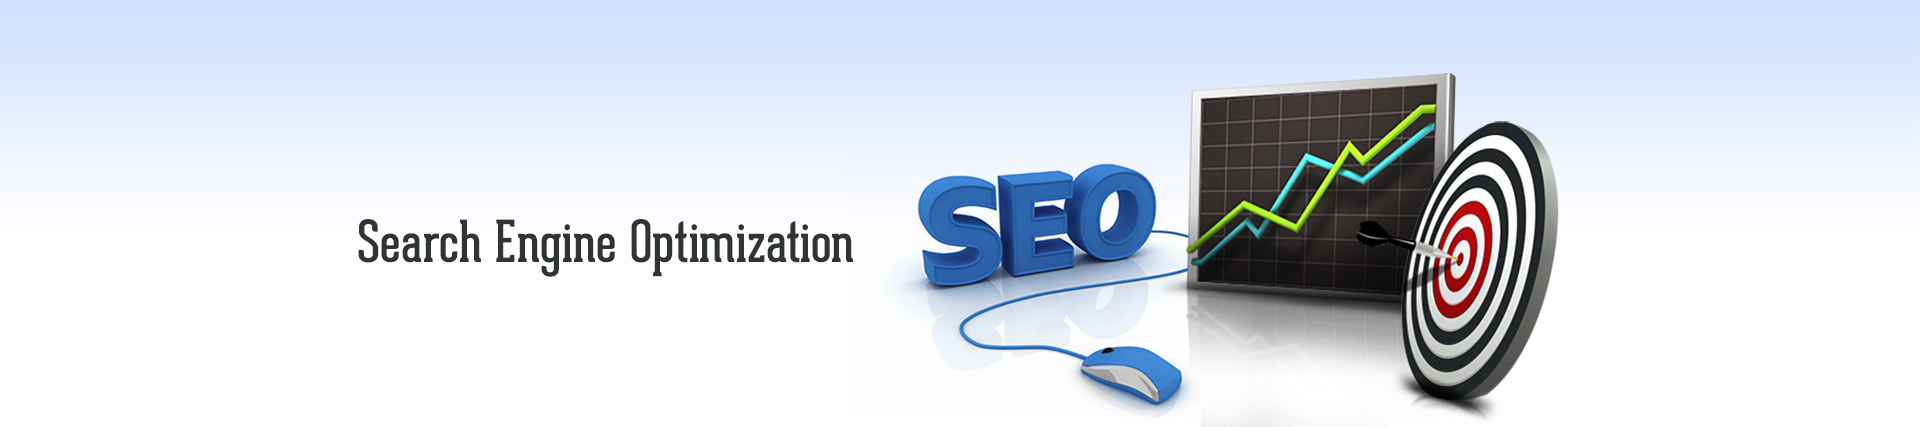 Search Engine Optimization - Top Rated SEO Services Los Angeles